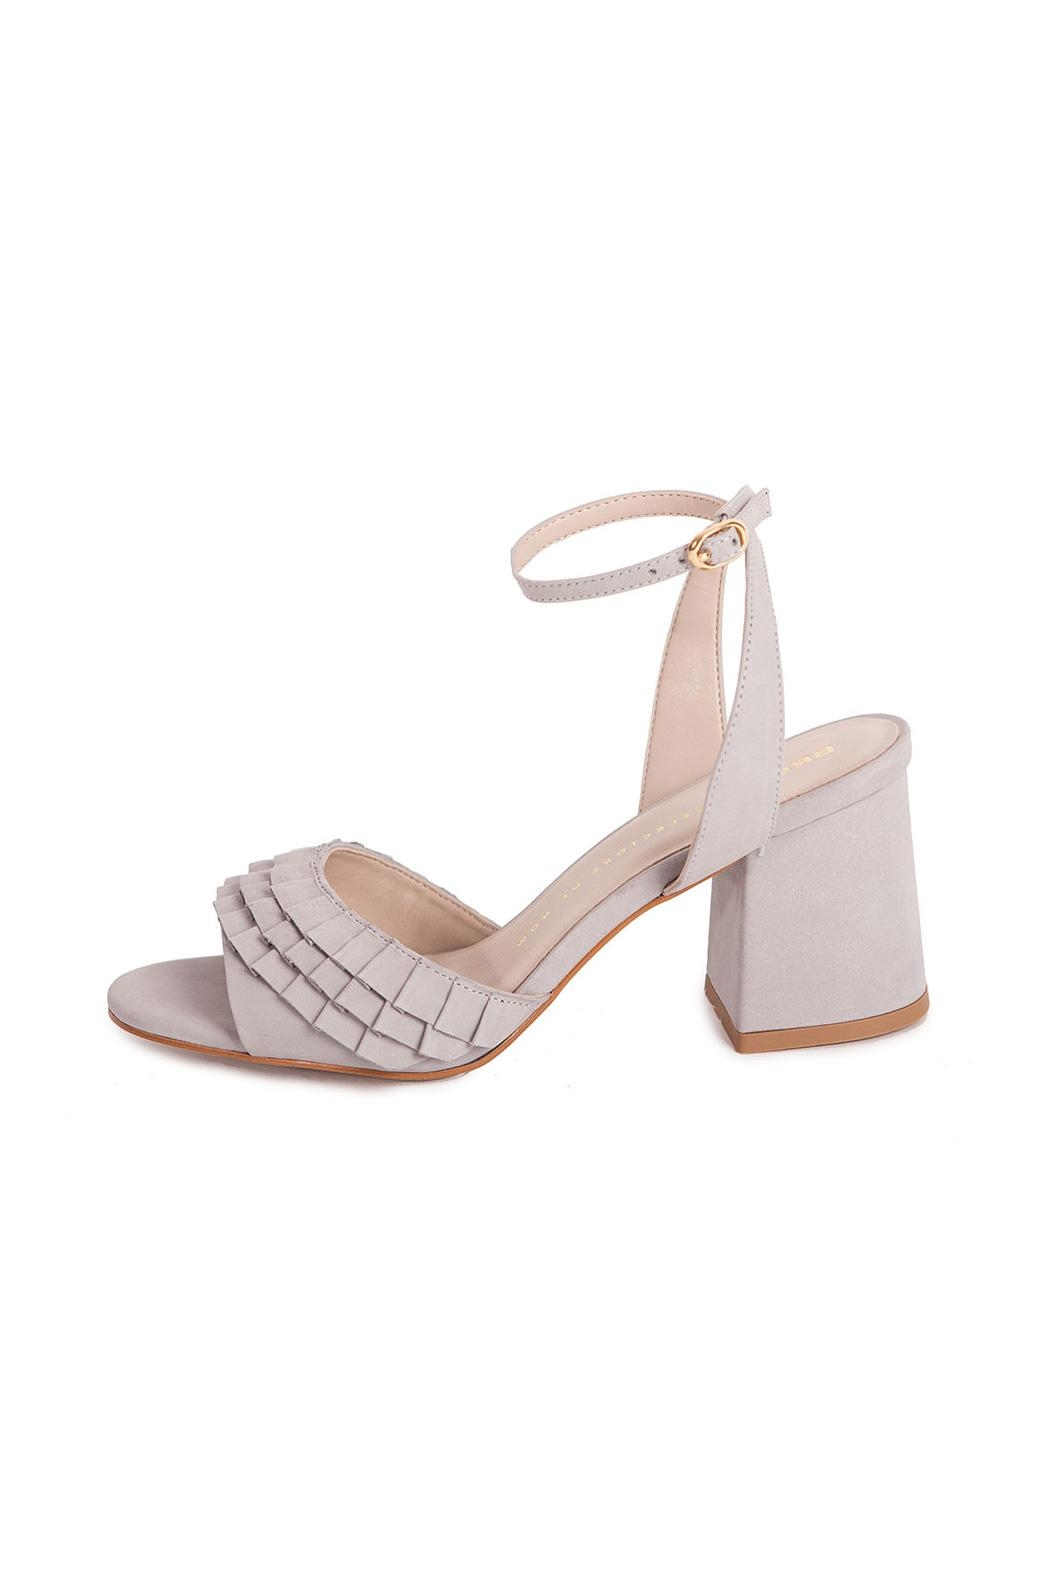 Bronx Grey Suede Heeled Sandals - Front Full Image